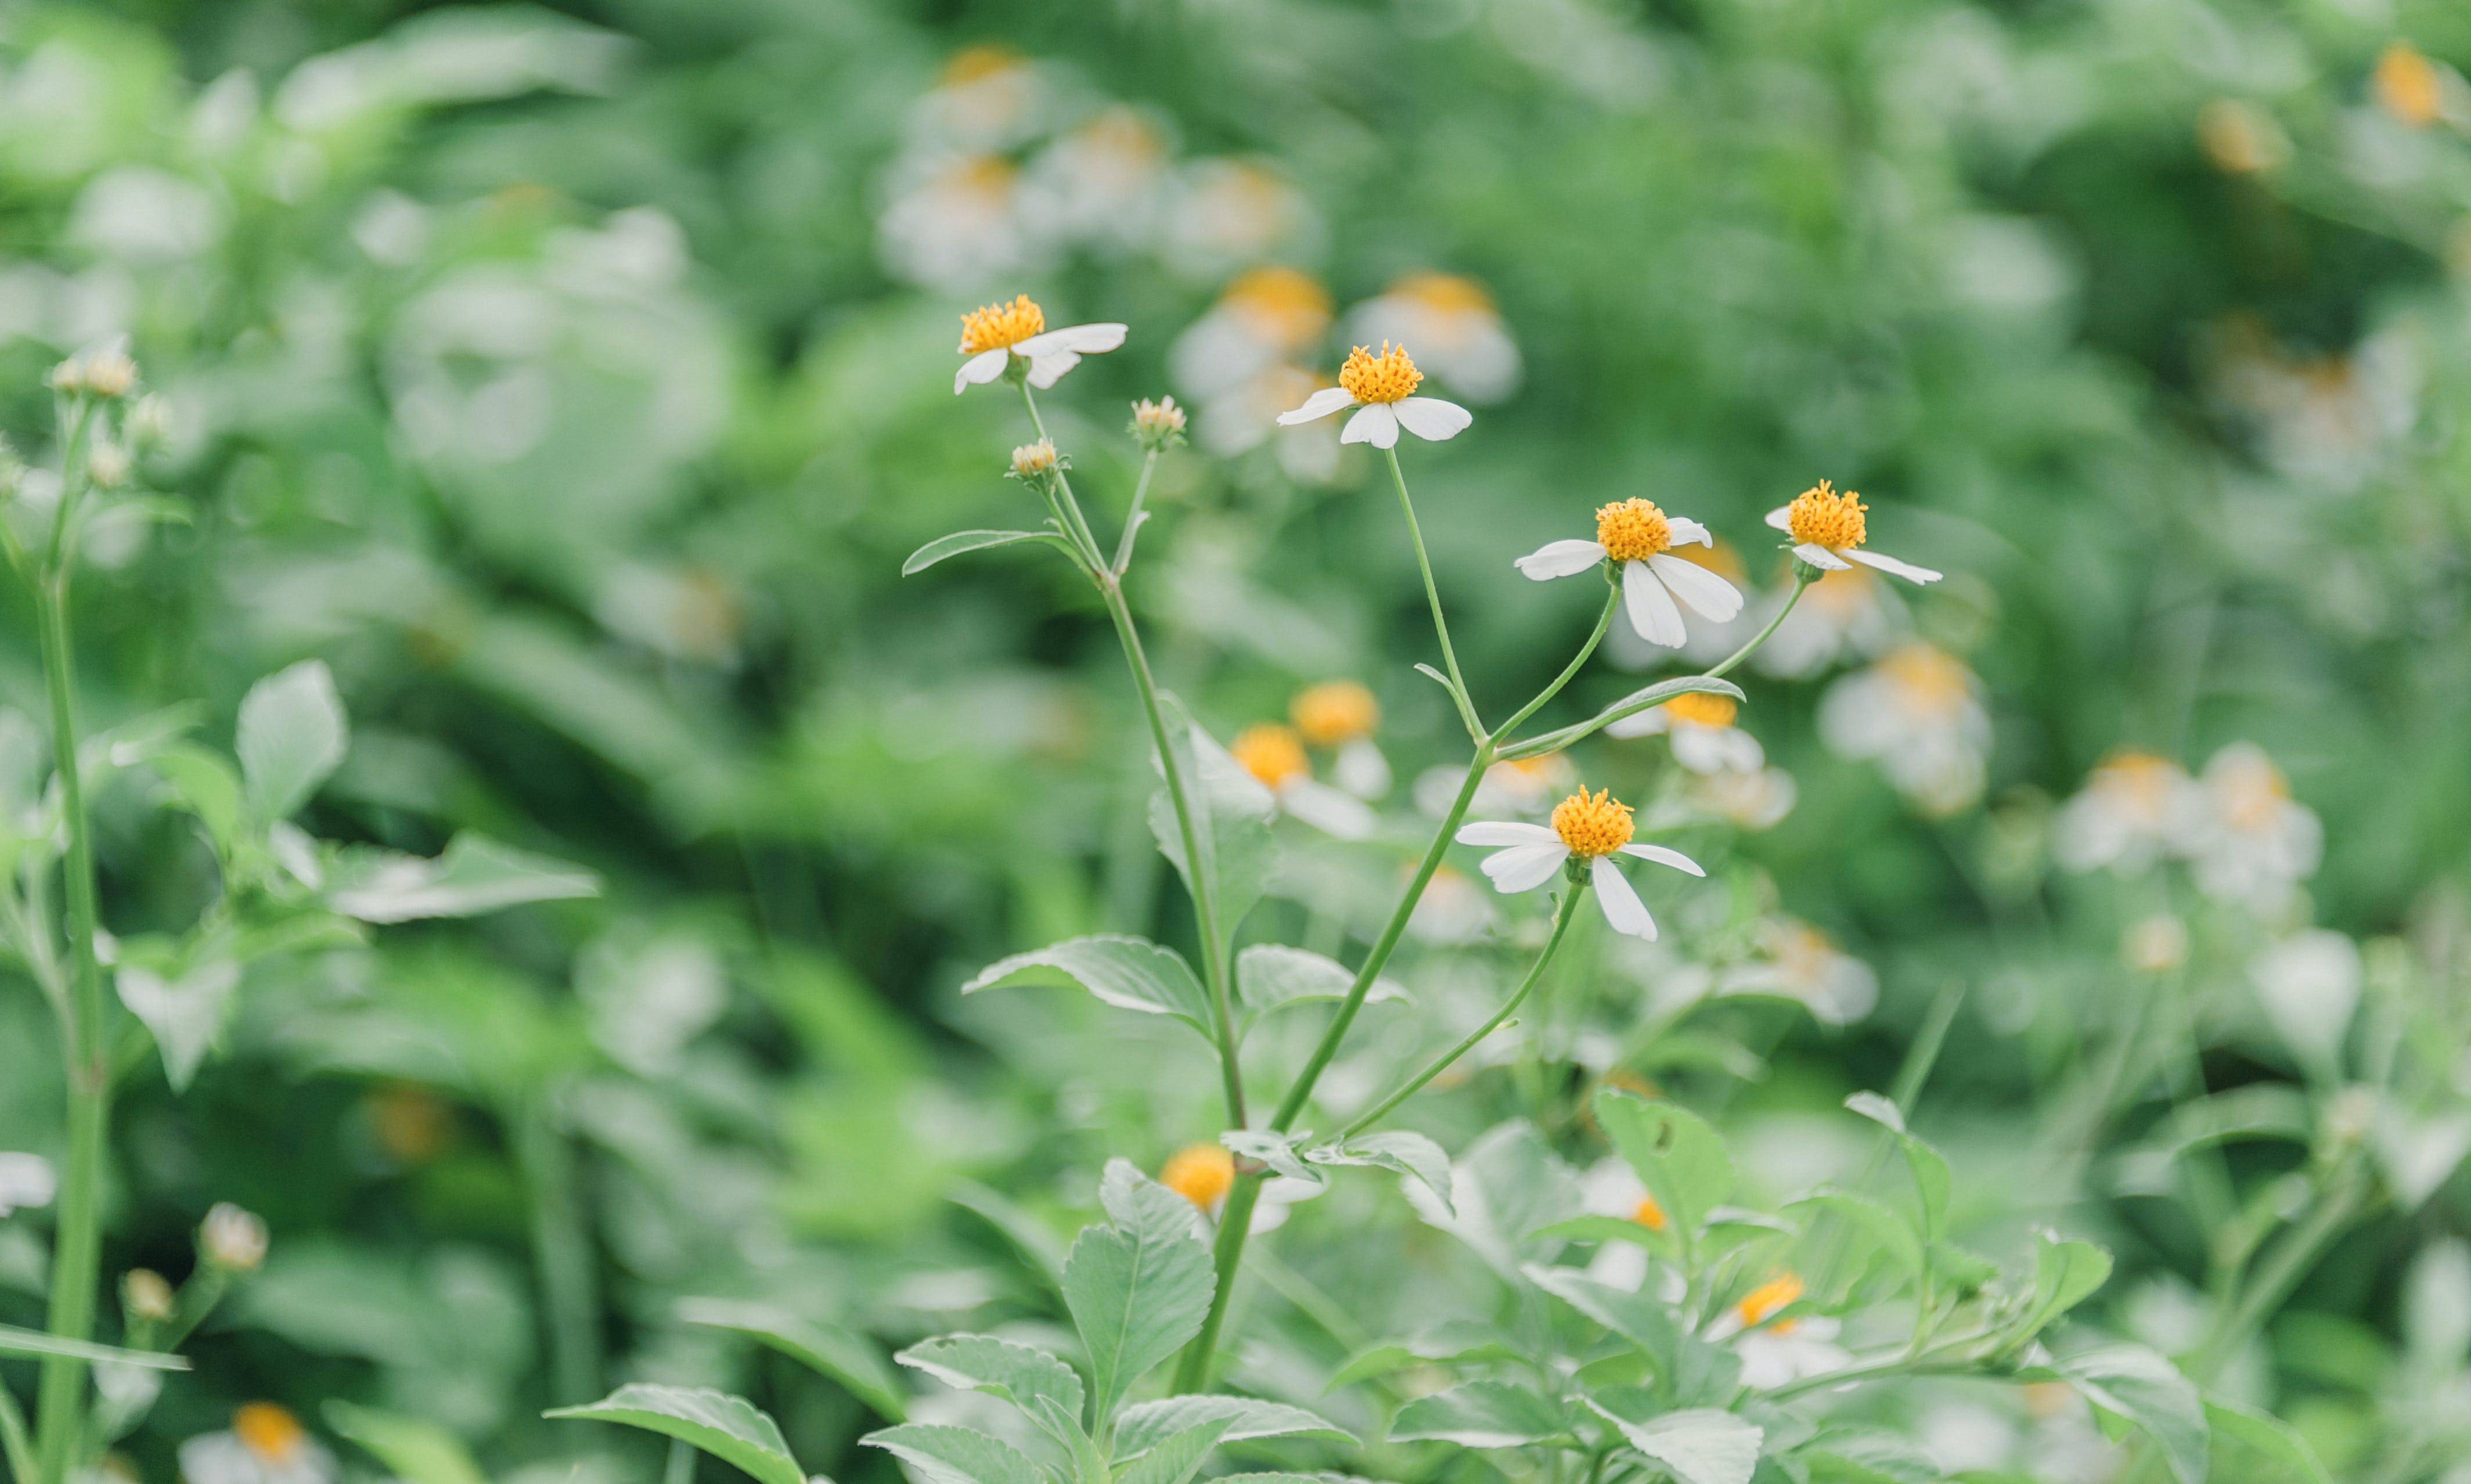 Shallow Focus Photography of Green Leafed Plants With White Flowers